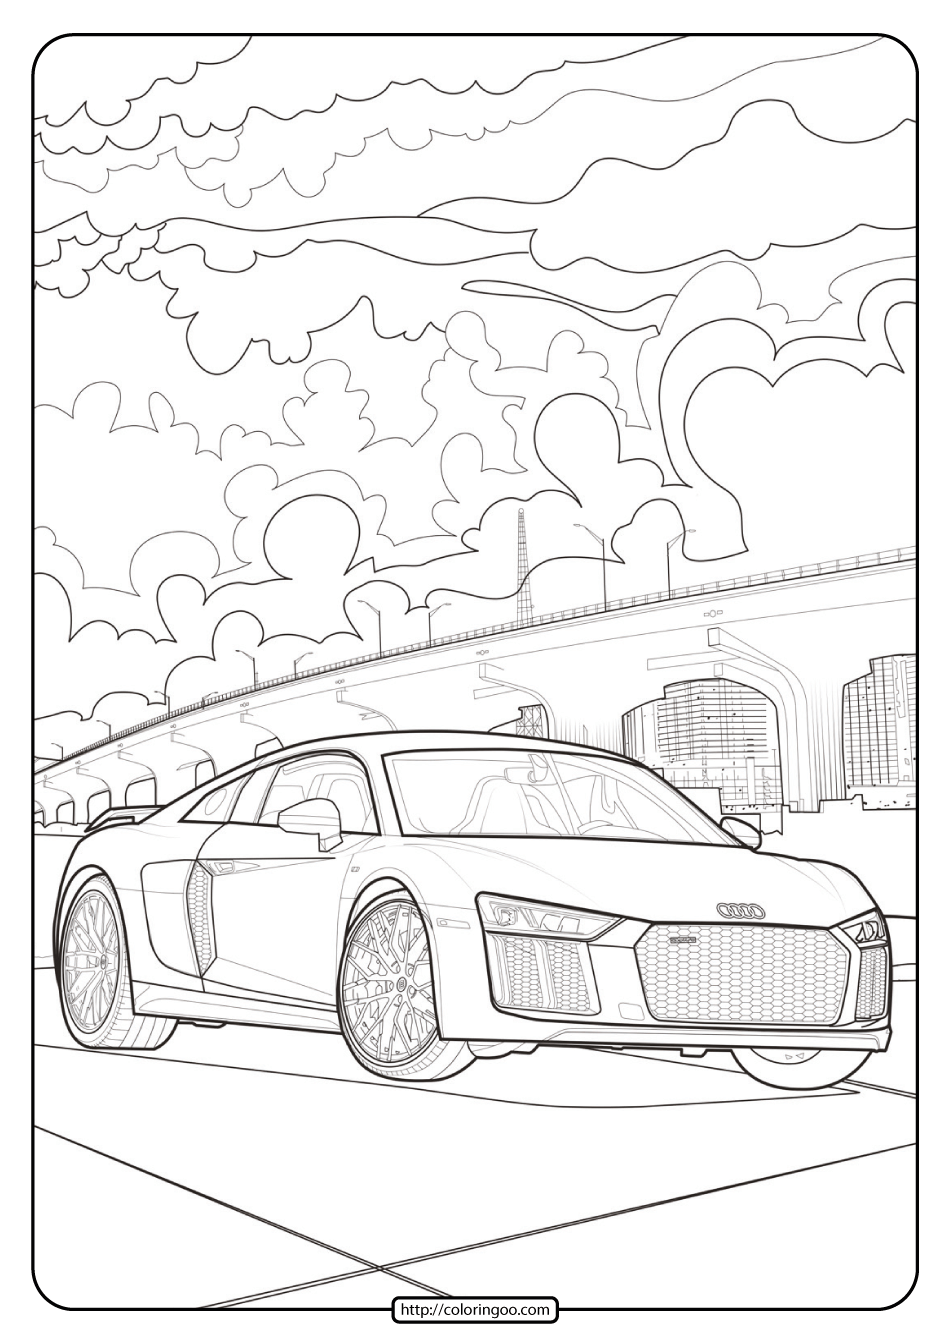 Printable Audi Cars Coloring Book & Page - 12